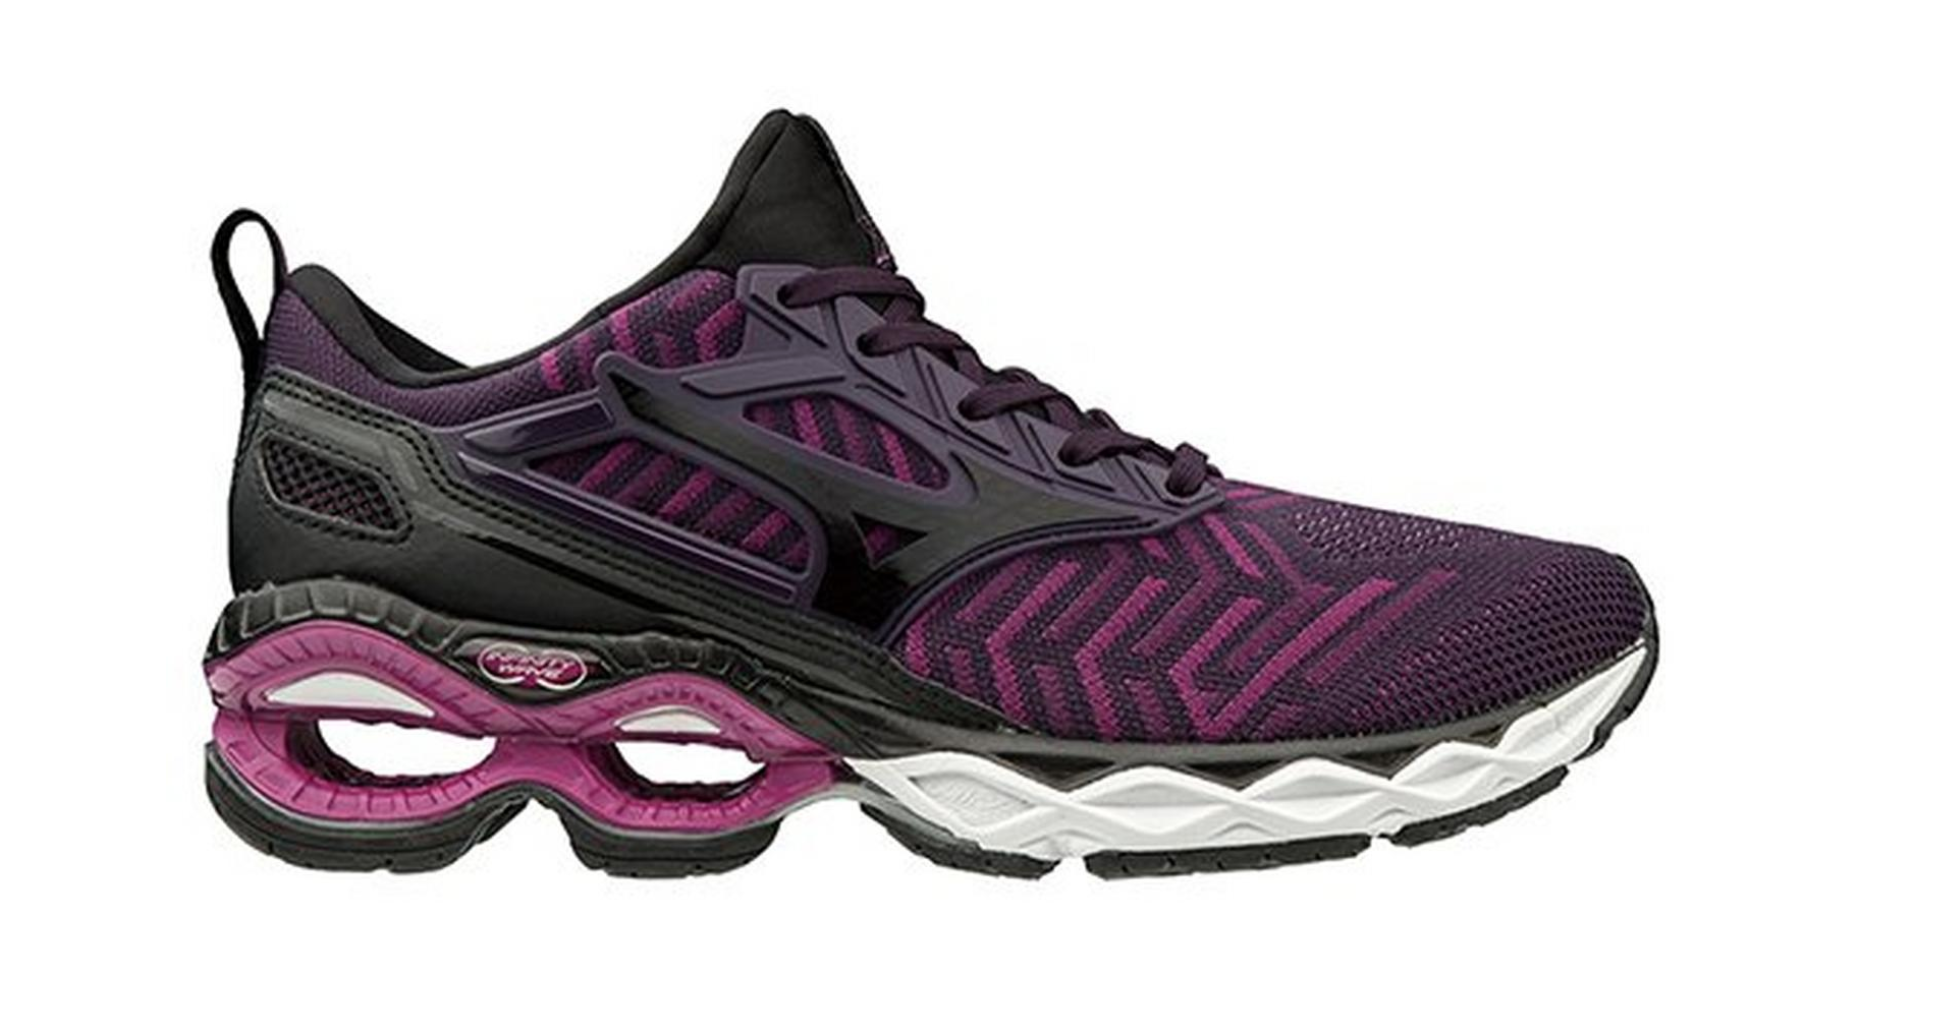 best mizuno shoes for walking everyday edition women's